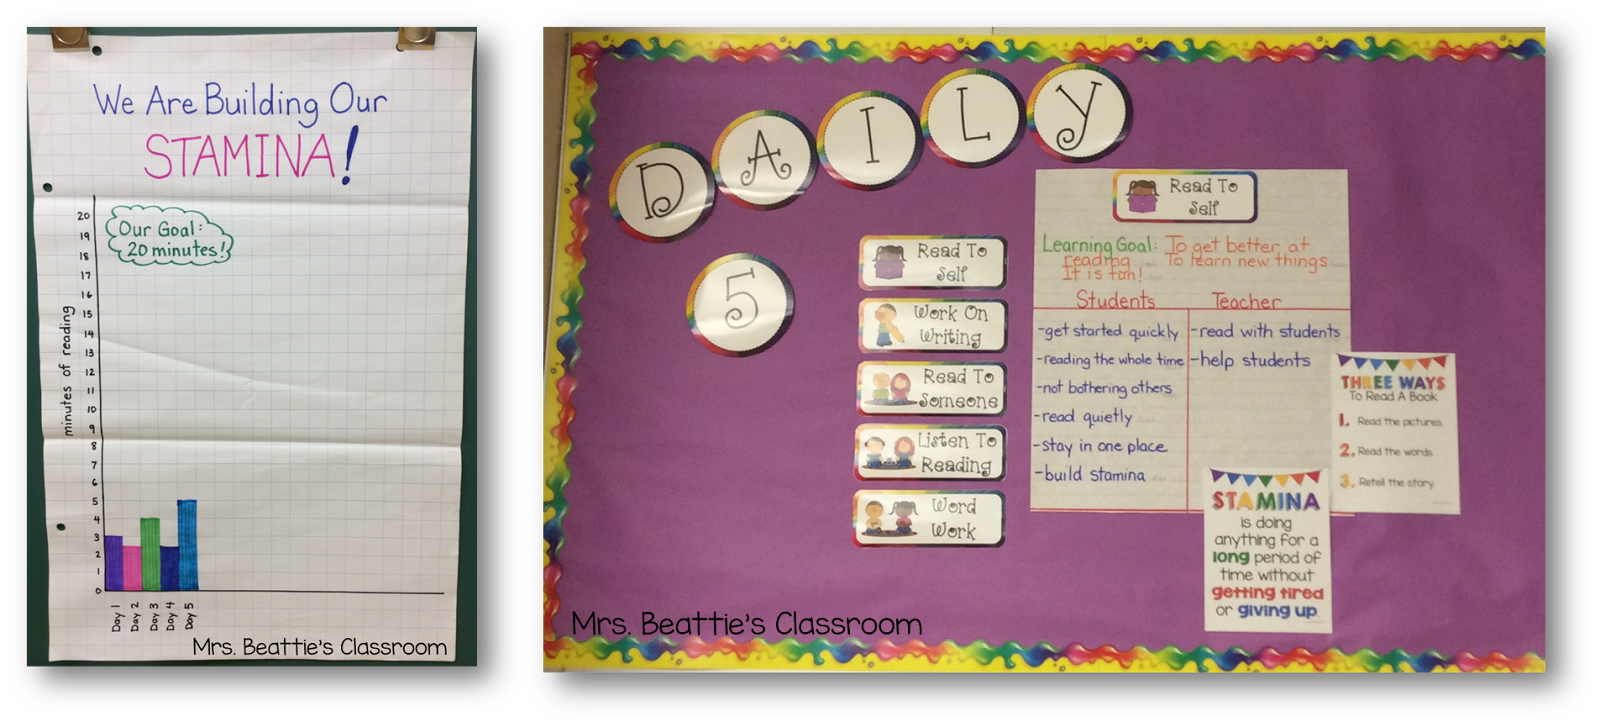 Check out how The Daily 5 is coming along in Mrs. Beattie's Classroom.